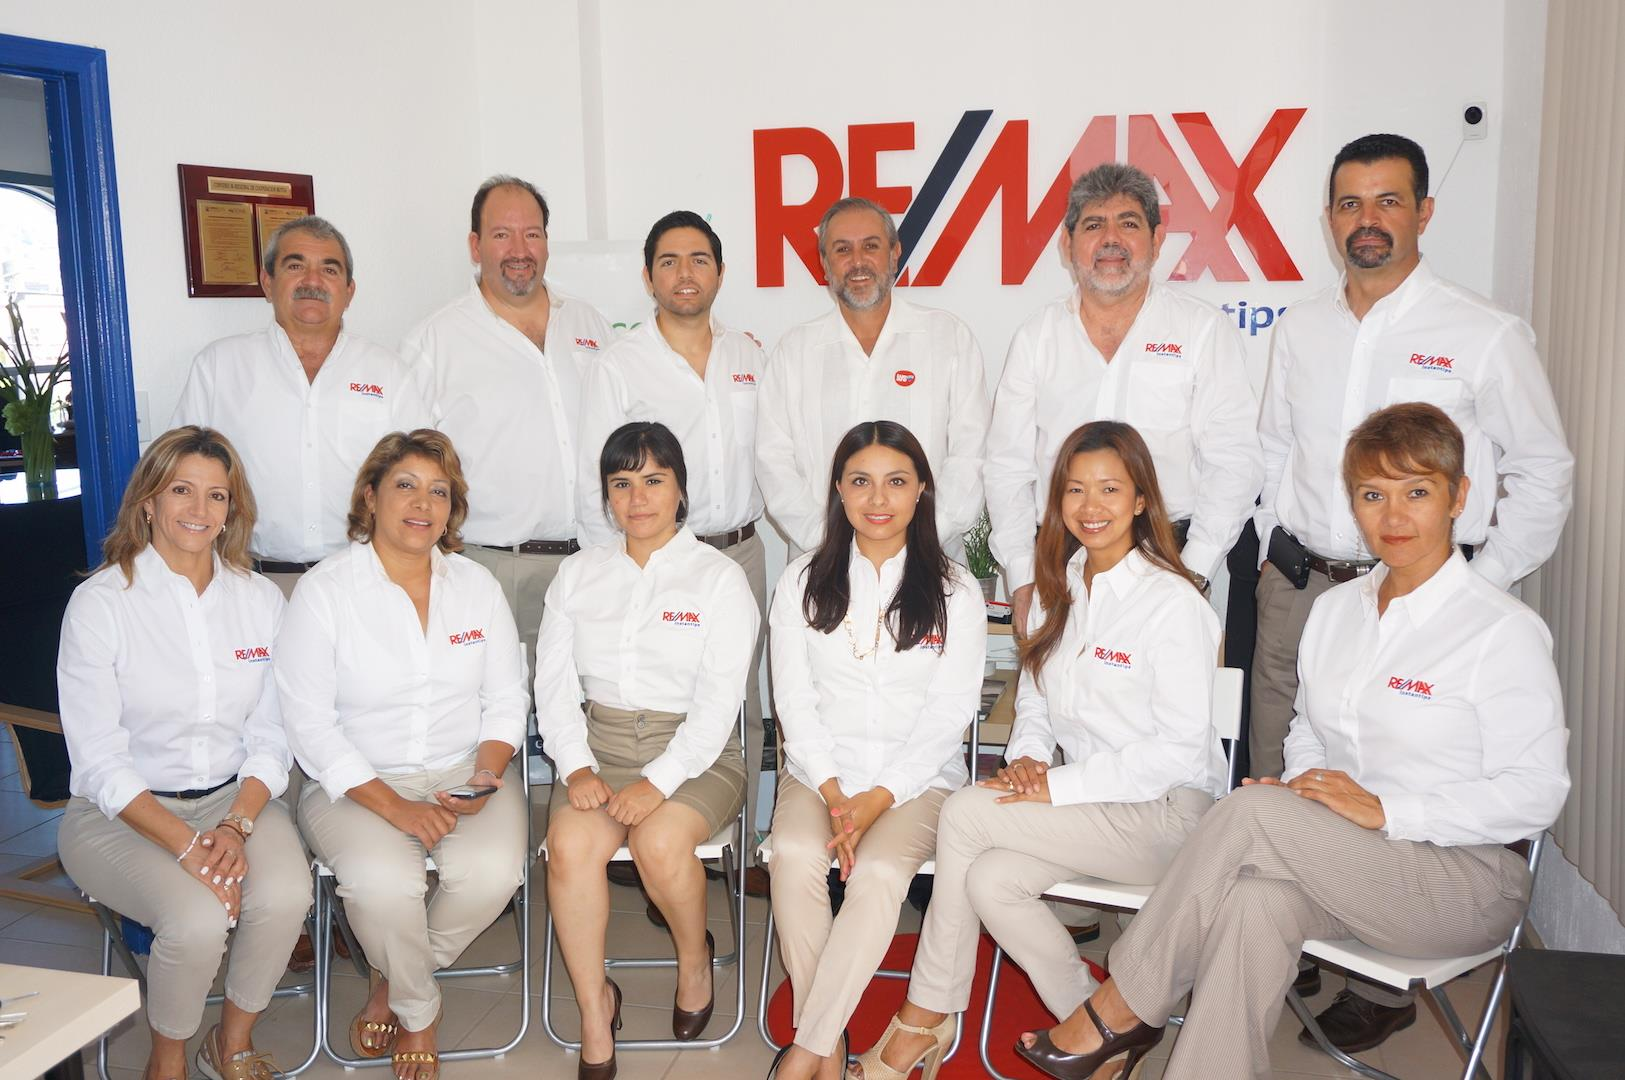 Team_REMAX_in_Ensenada_and_Tijuana